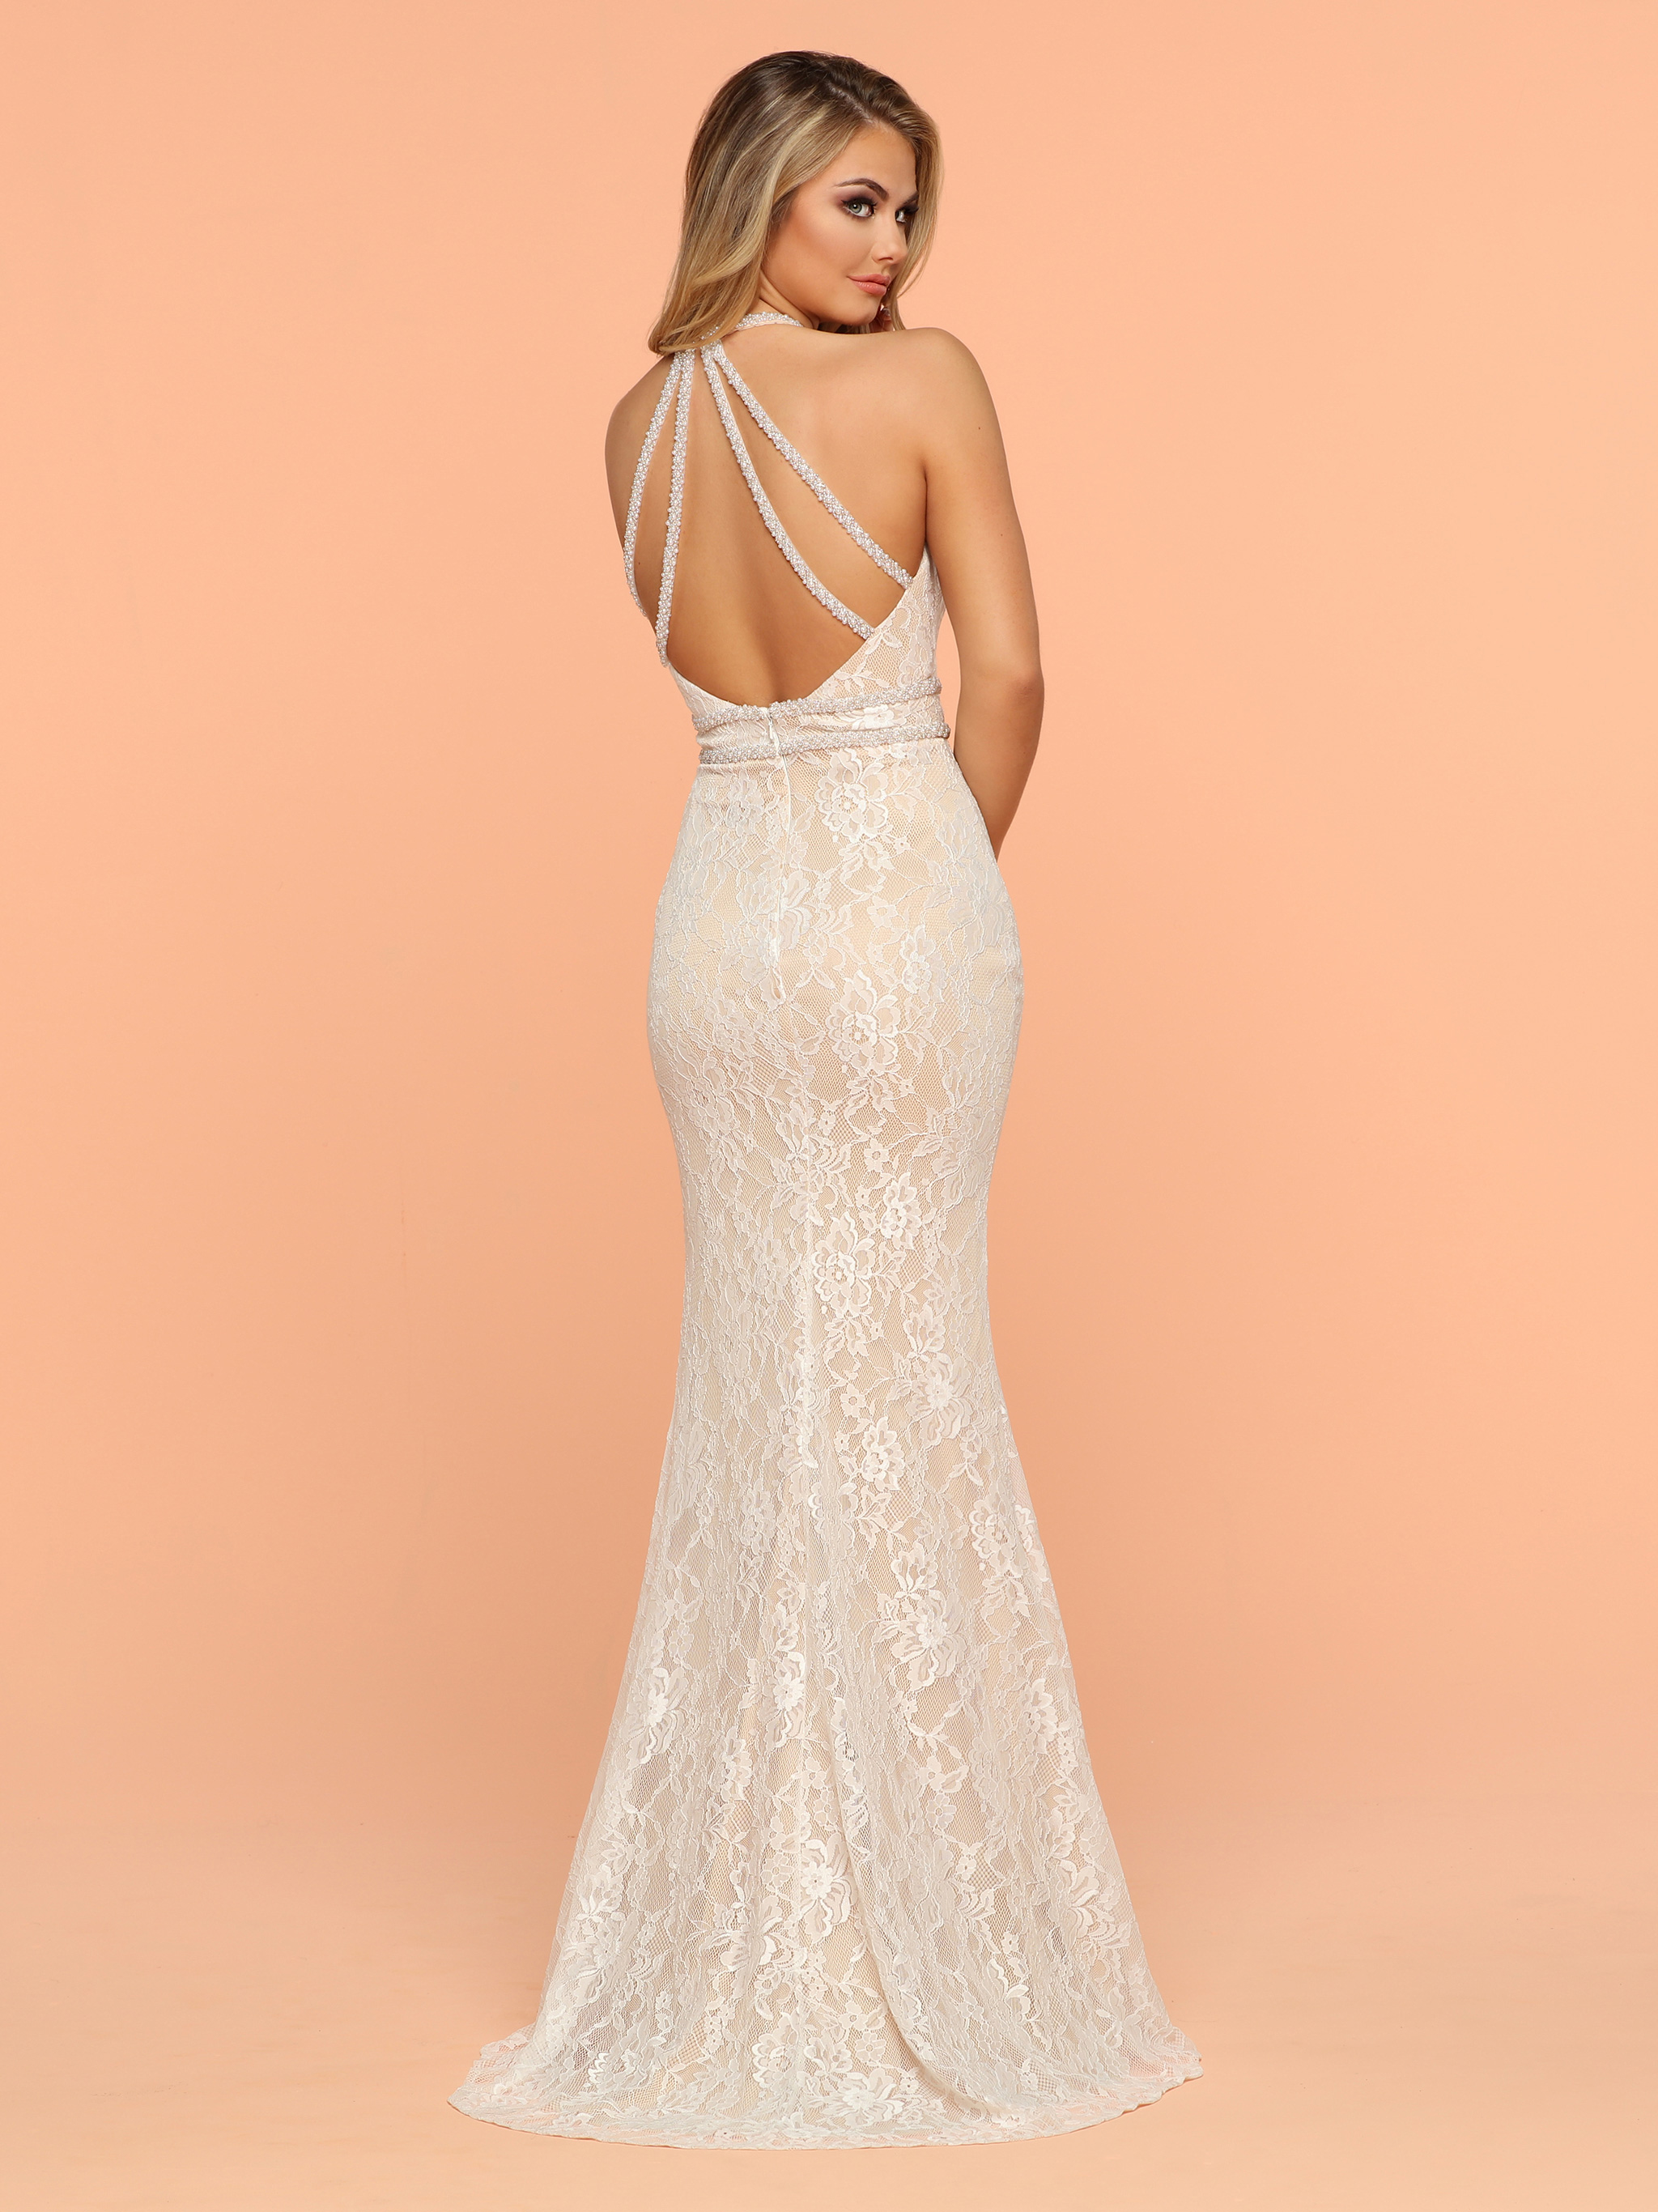 Image showing back view of style #71908